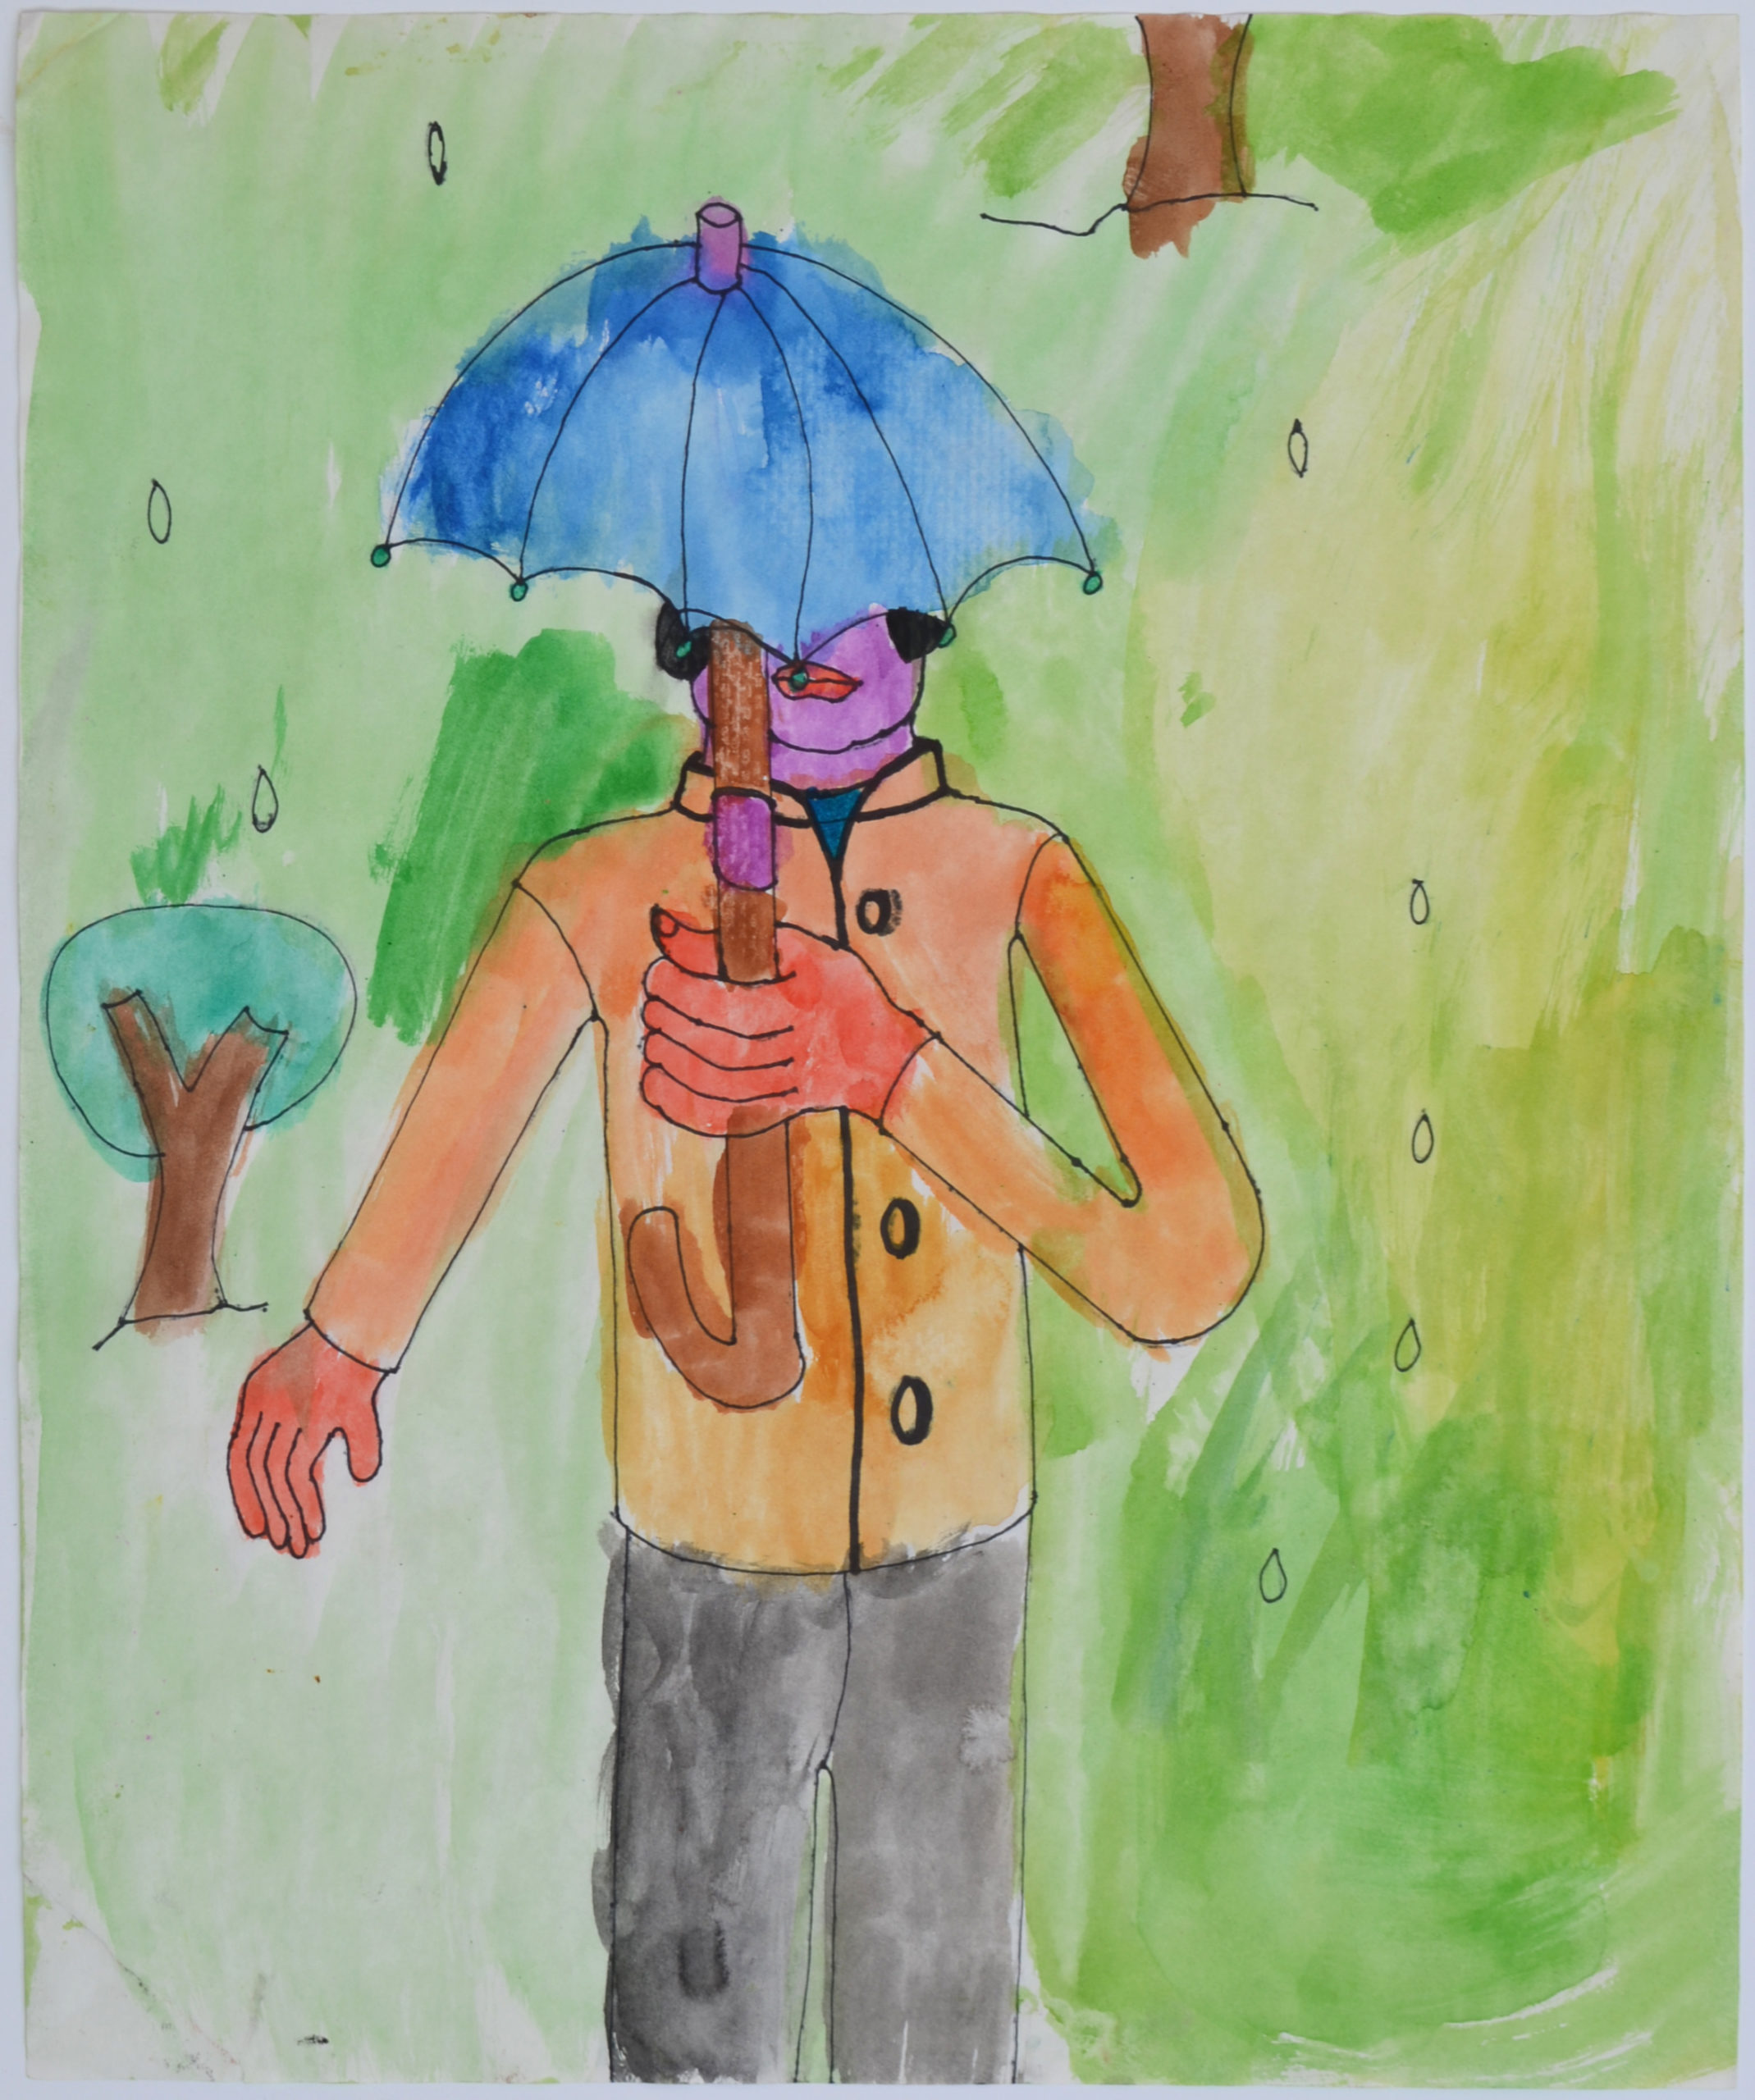 Untitled person with umbrella by Cathy Anderson